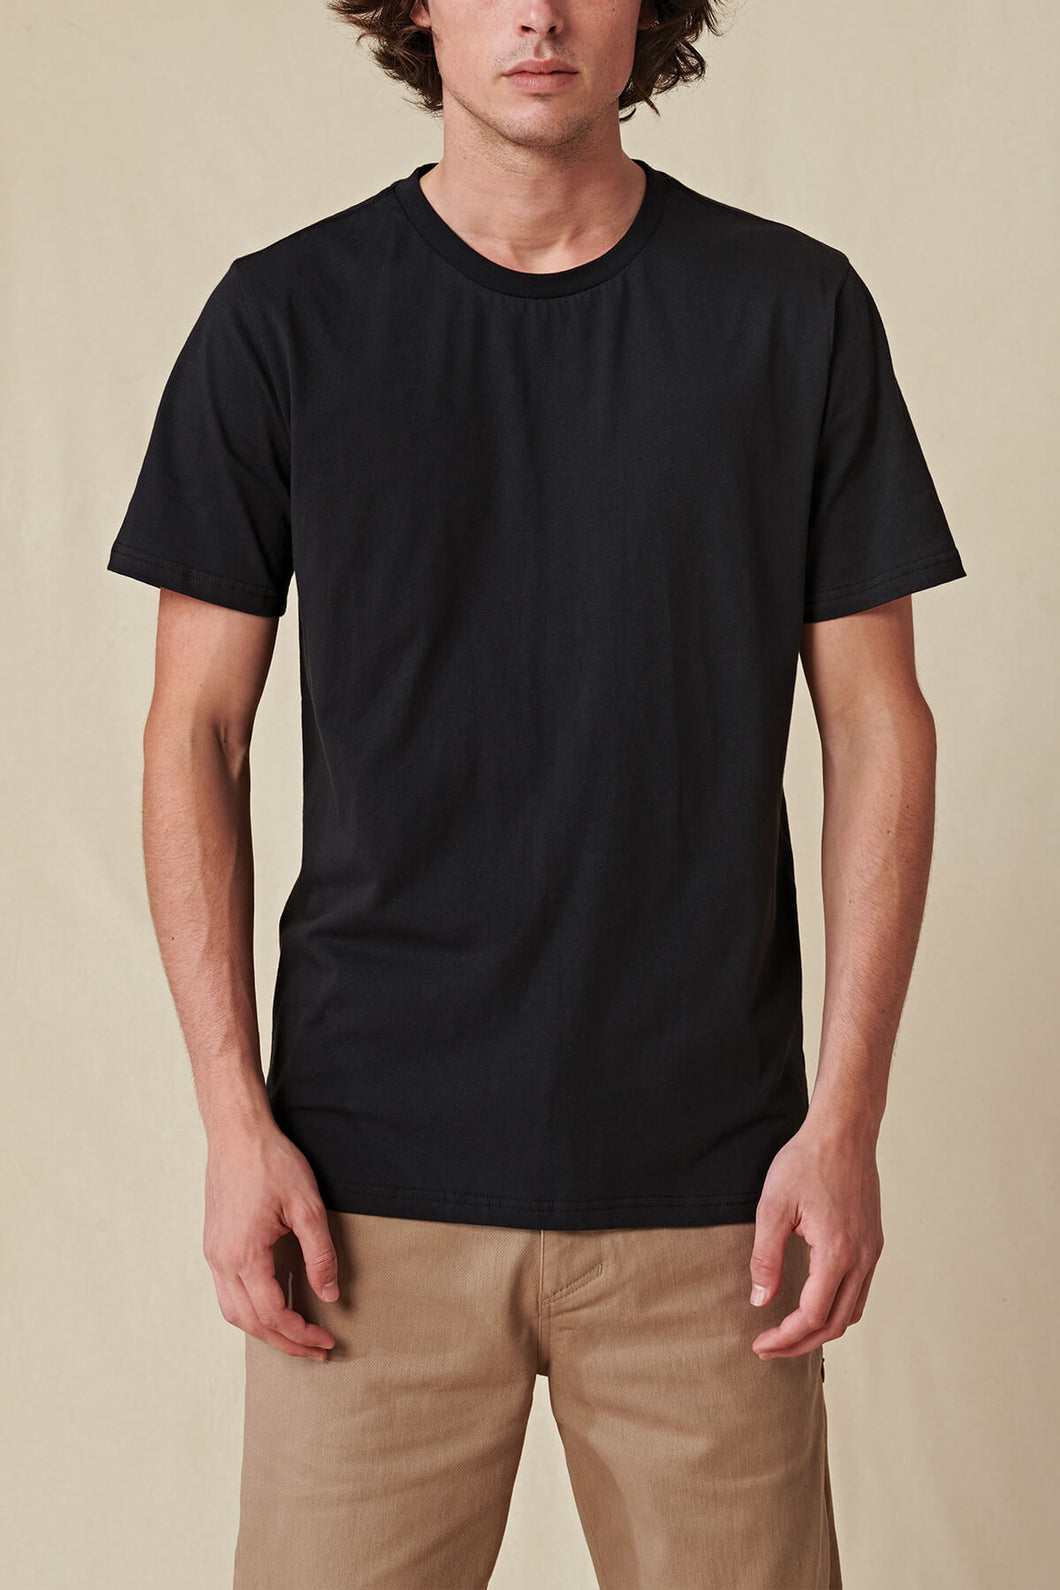 Globe TEE S/S Down Under Tee in Black